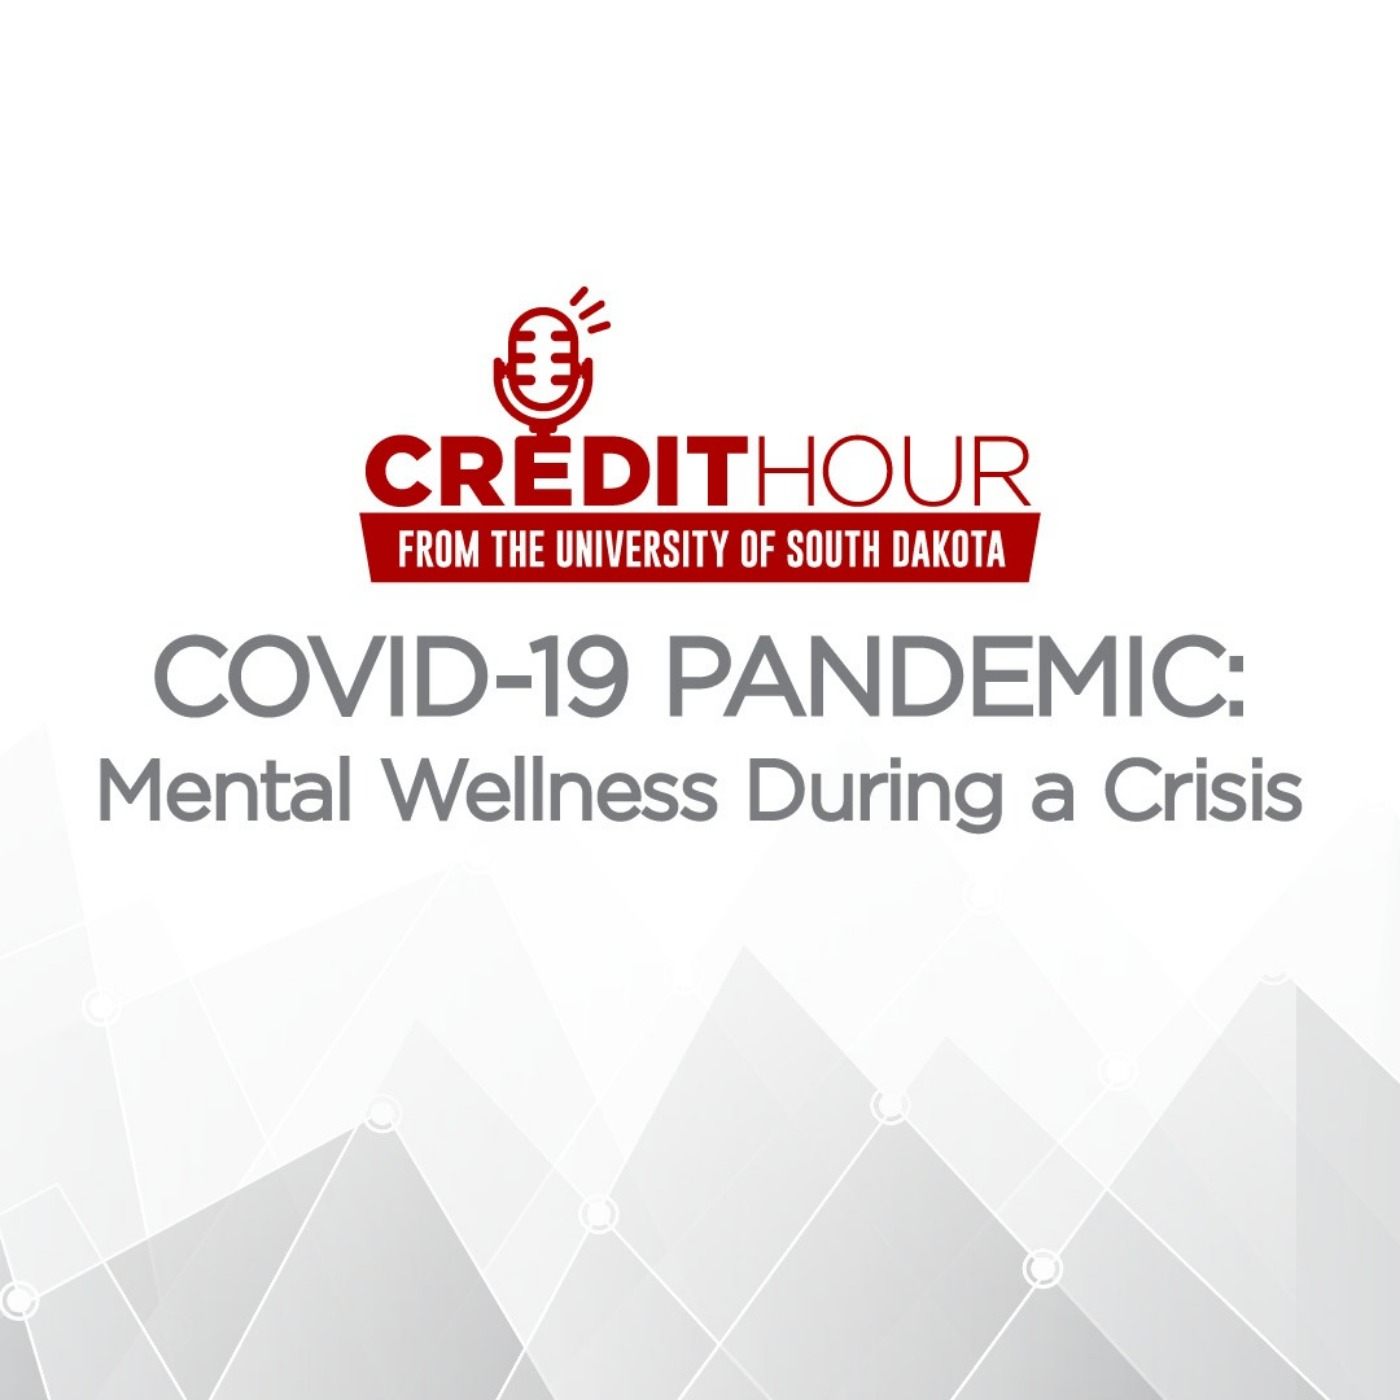 COVID-19 PANDEMIC | Mental Wellness During a Crisis